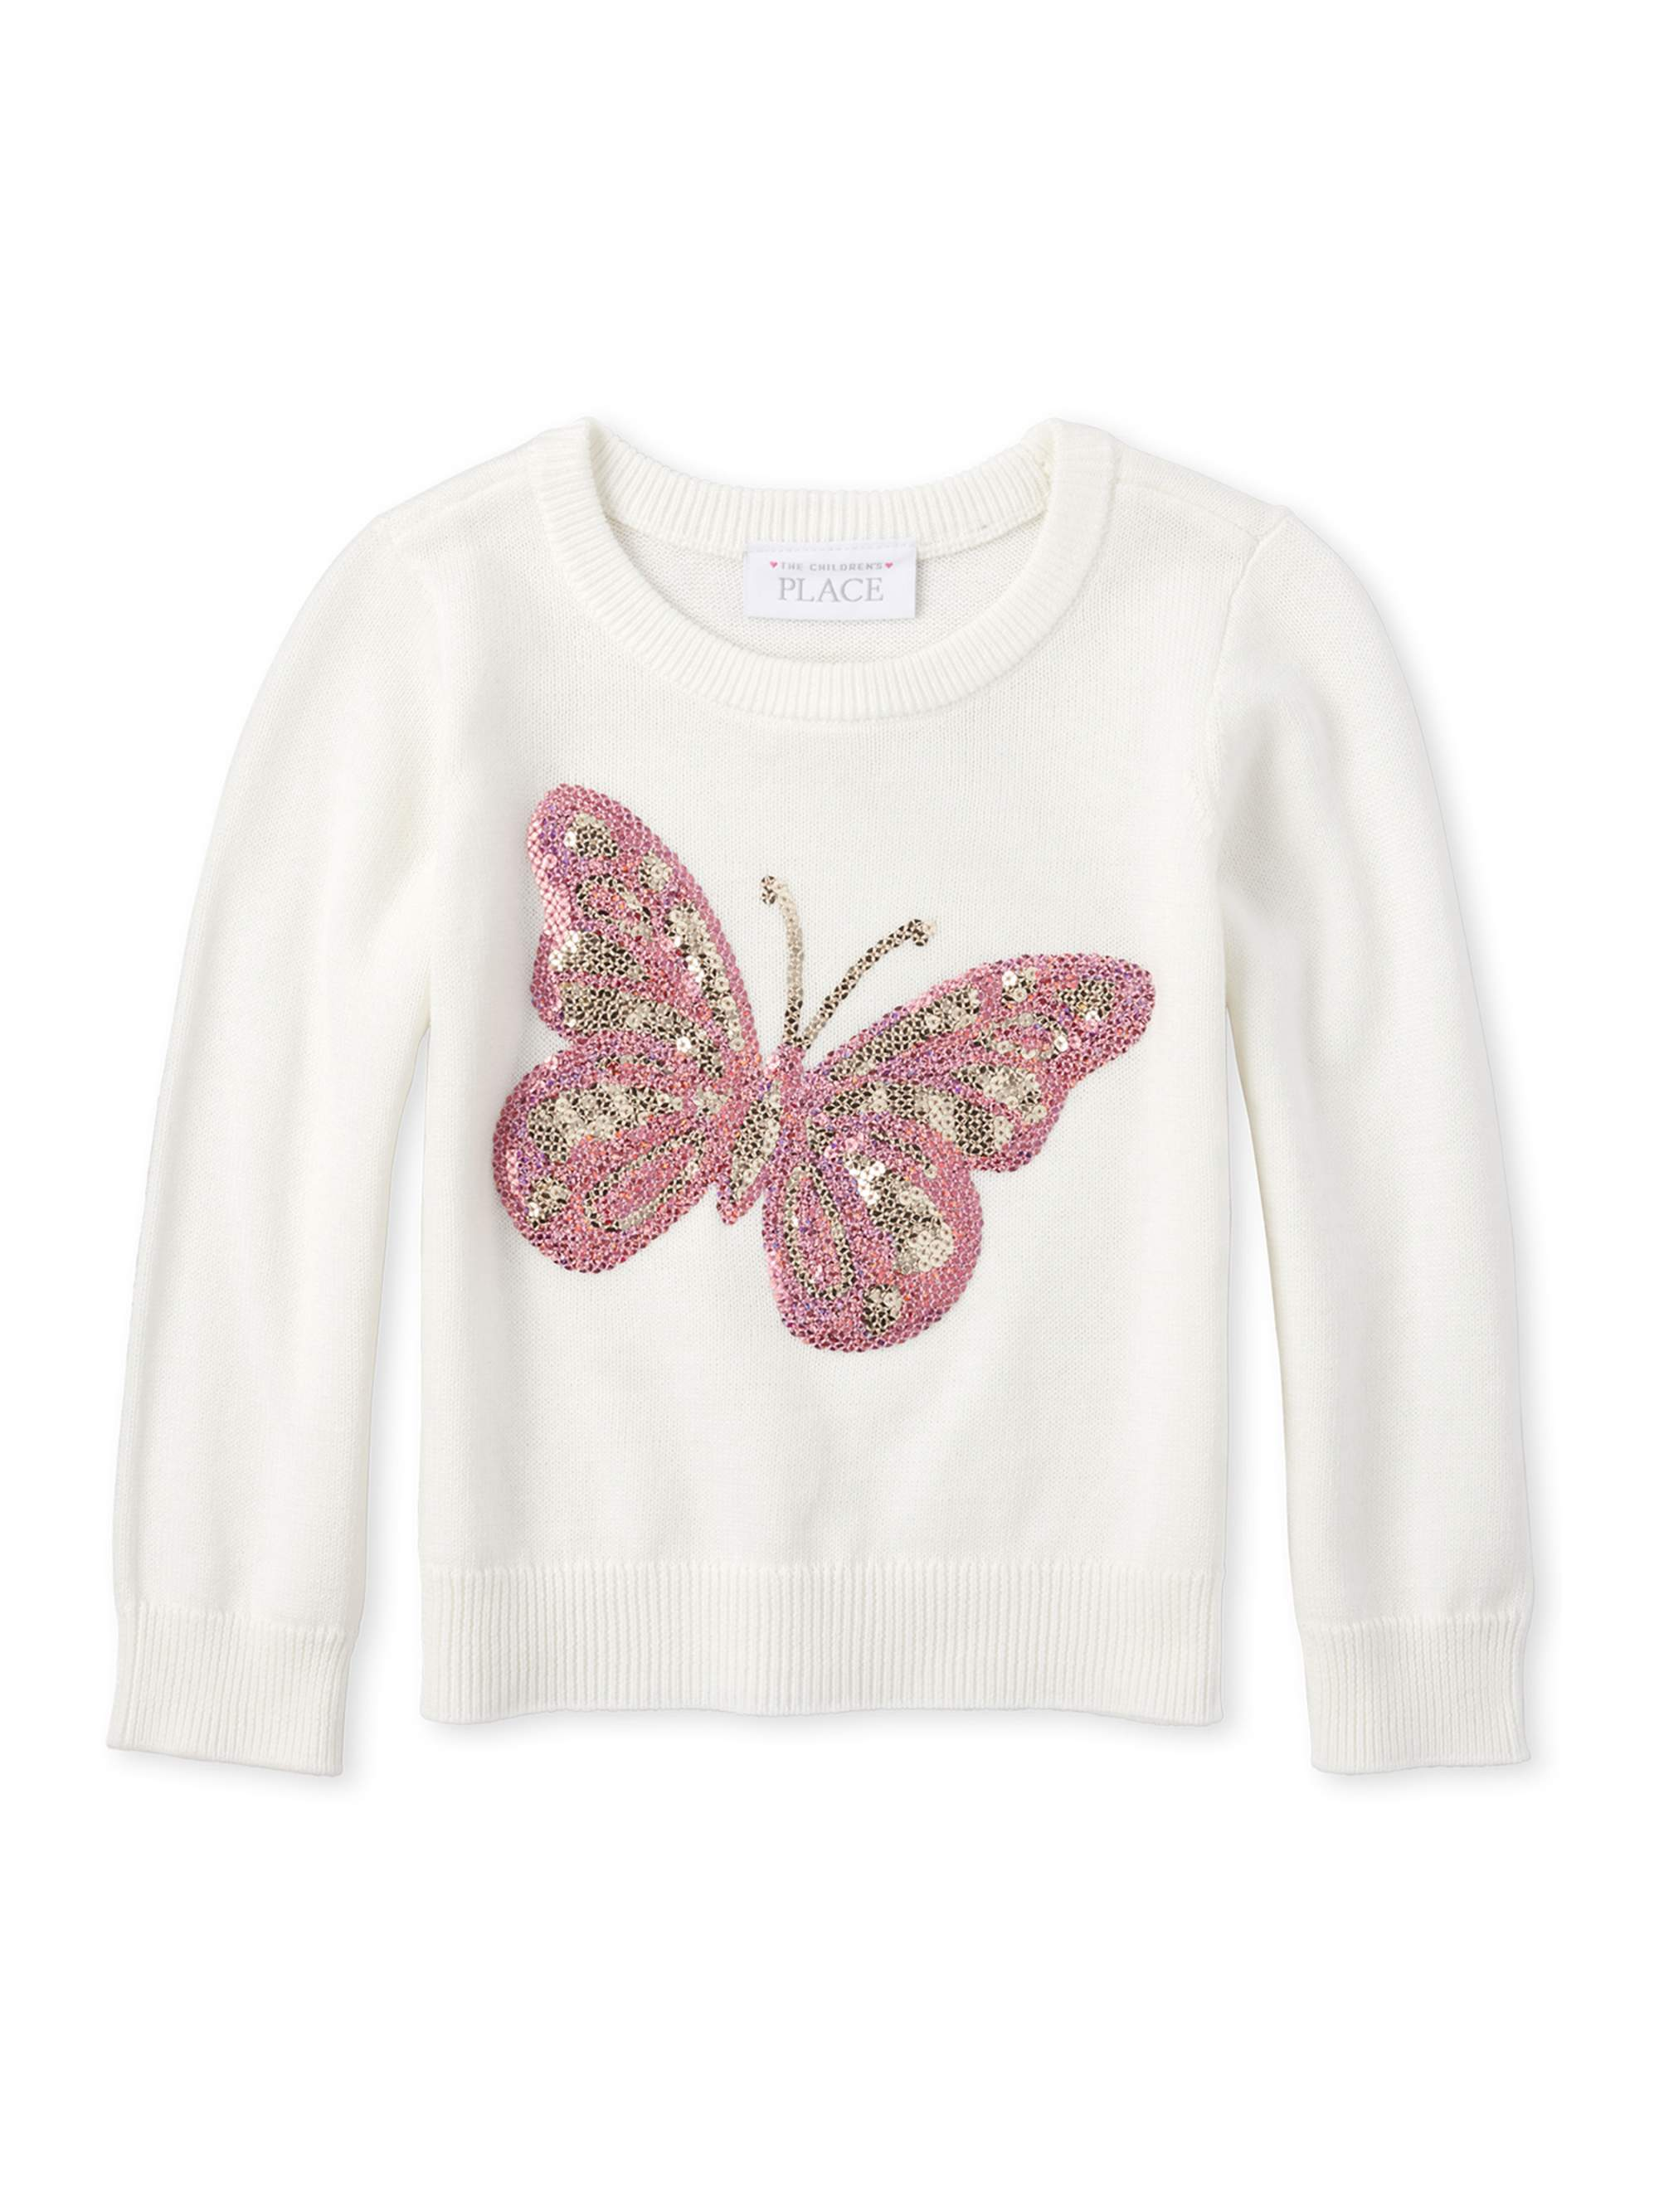 The Childrens Place Girls Toddler Graphic Sweater